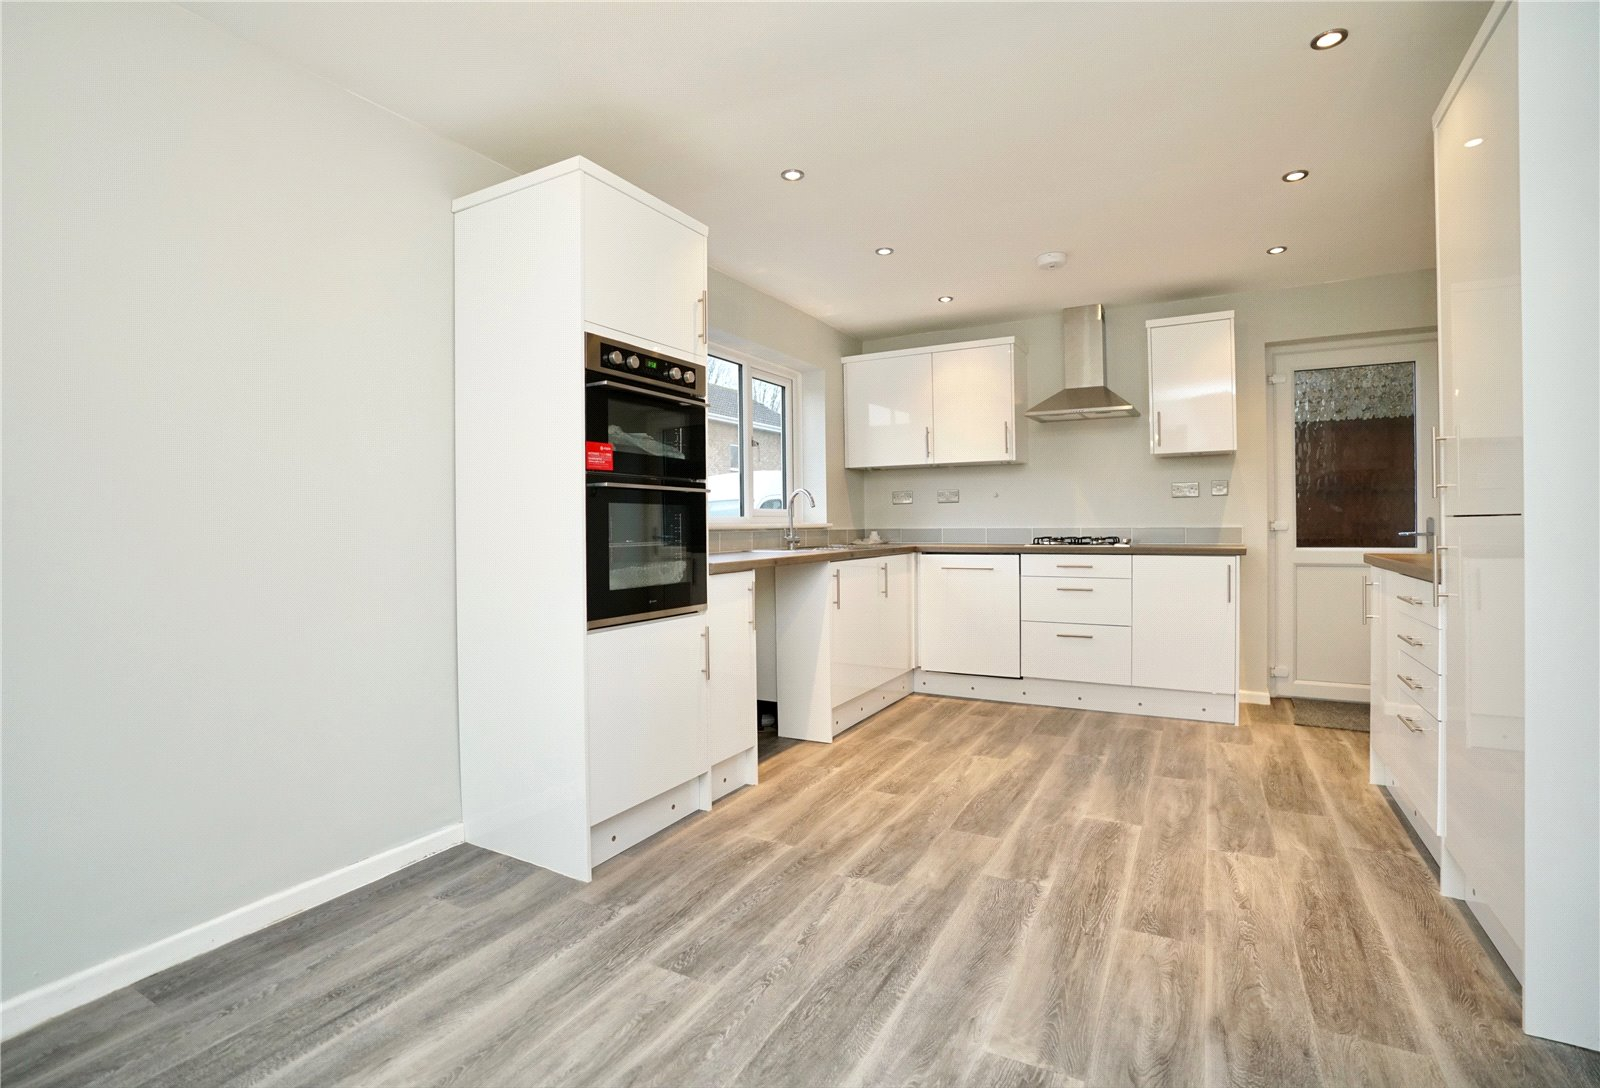 4 bed house for sale in Eaton Socon 1